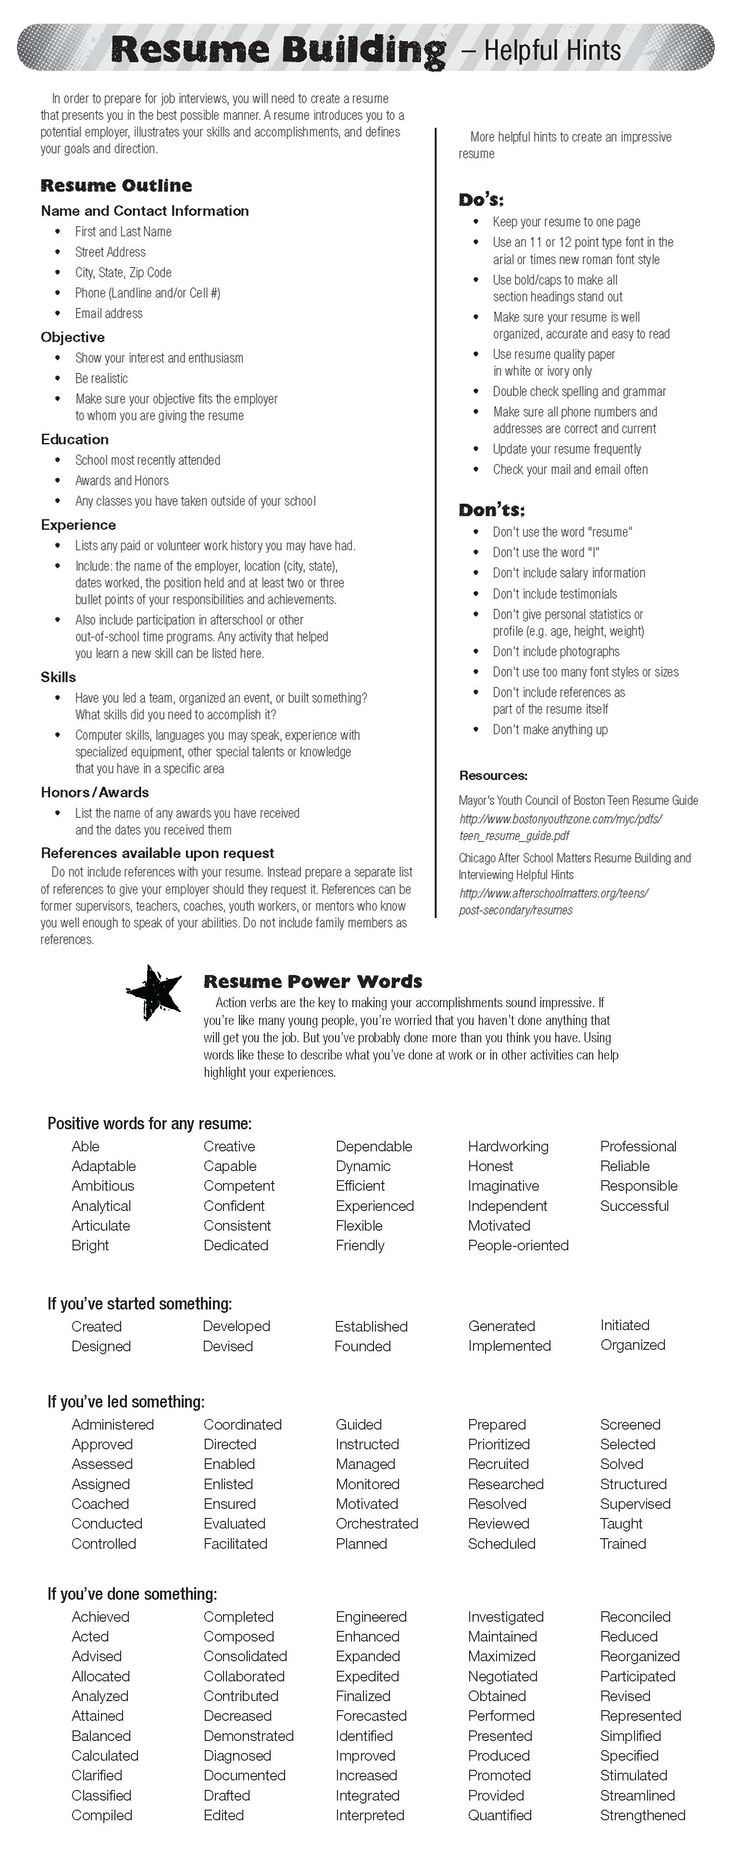 Opposenewapstandardsus  Splendid  Ideas About Resume On Pinterest  Cv Format Resume  With Luxury Check Out Todays Resume Building Tips Resume Resumepowerwords With Charming College Student Sample Resume Also Resume Promotion In Addition Resume Skills Summary And How To Write A Teacher Resume As Well As Professional Resume Tips Additionally Professional Resumes Examples From Pinterestcom With Opposenewapstandardsus  Luxury  Ideas About Resume On Pinterest  Cv Format Resume  With Charming Check Out Todays Resume Building Tips Resume Resumepowerwords And Splendid College Student Sample Resume Also Resume Promotion In Addition Resume Skills Summary From Pinterestcom